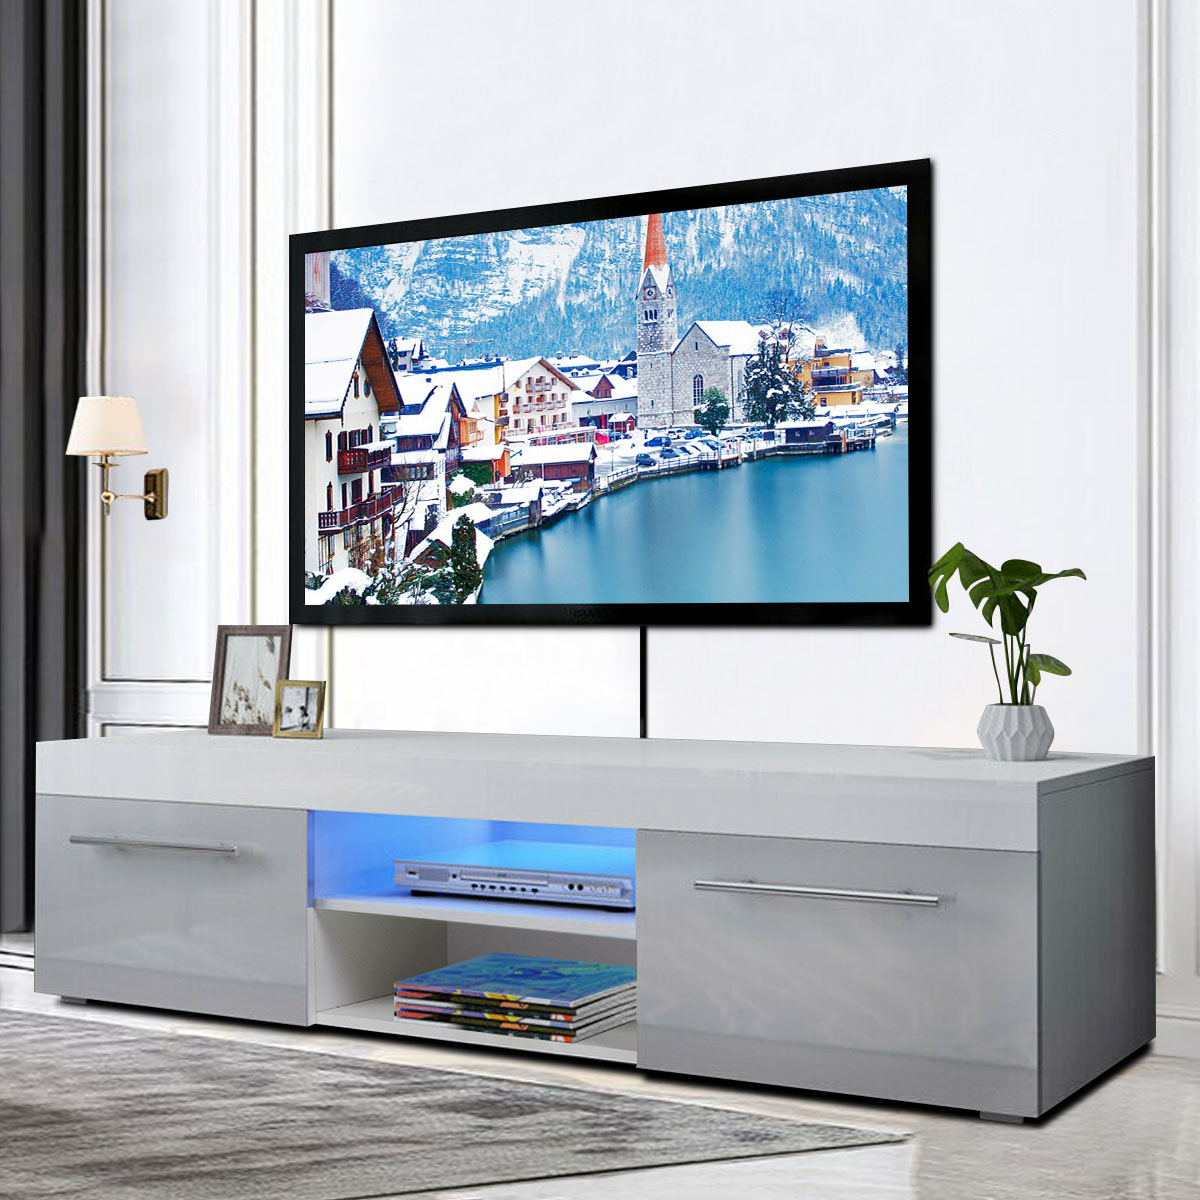 """Trendy Led Tv Stand Entertainment Center, For Tvs Up To 58"""" With With Regard To Greggs Tv Stands For Tvs Up To 58"""" (View 15 of 20)"""